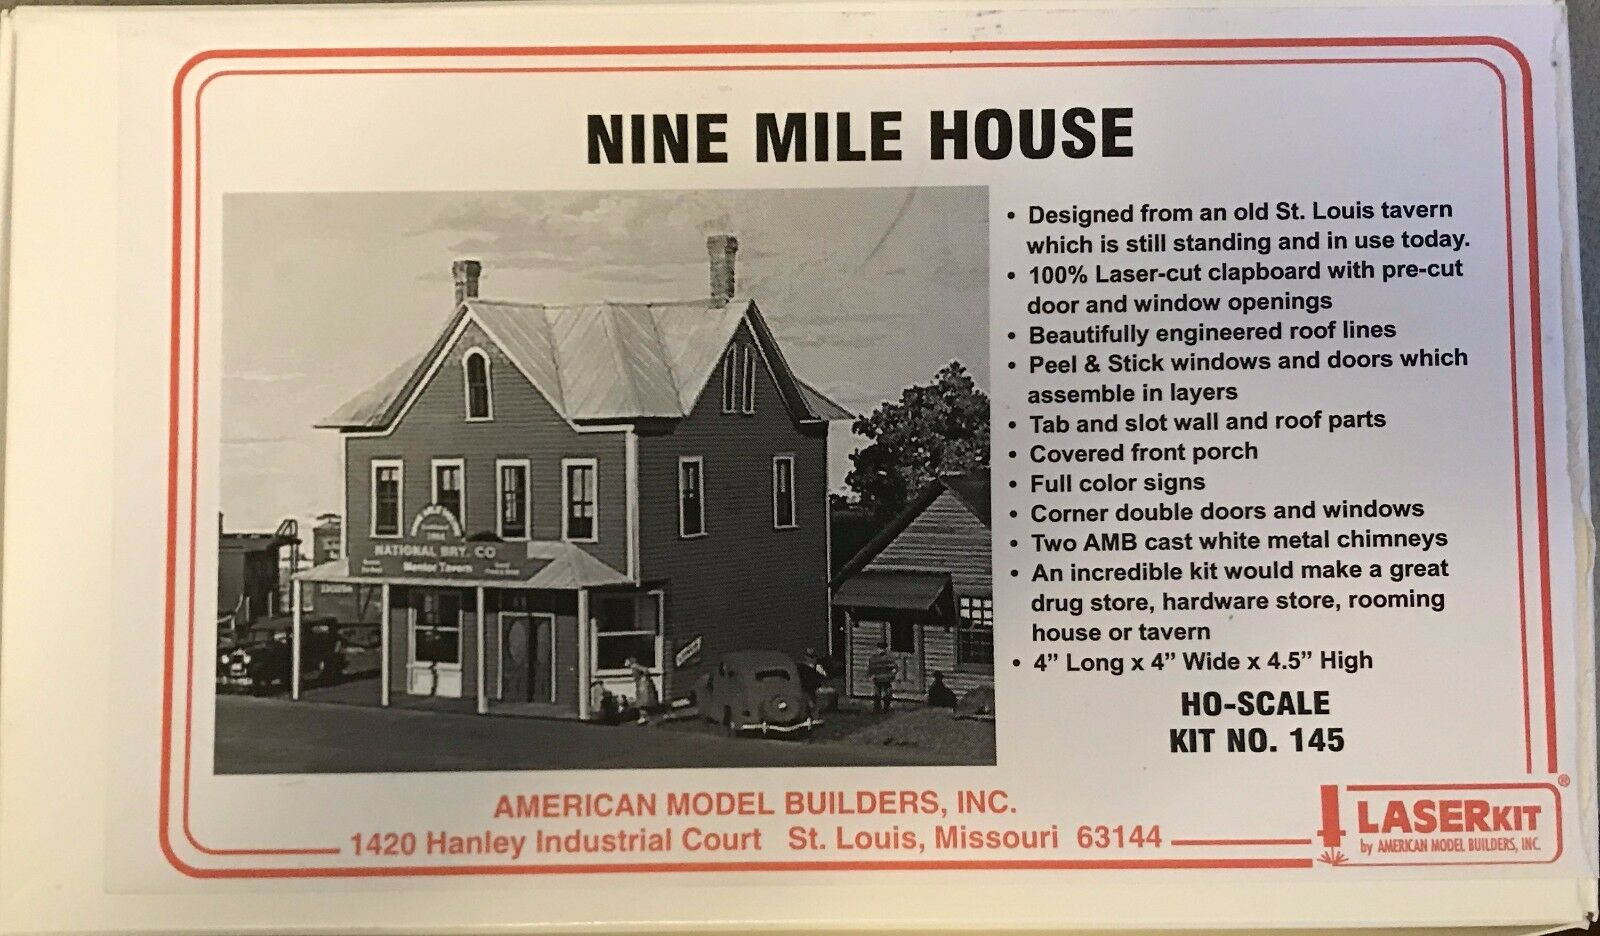 AMB Laser Kit  145 Nine Mile House & Tavern HO scale Craftsuomo Kit